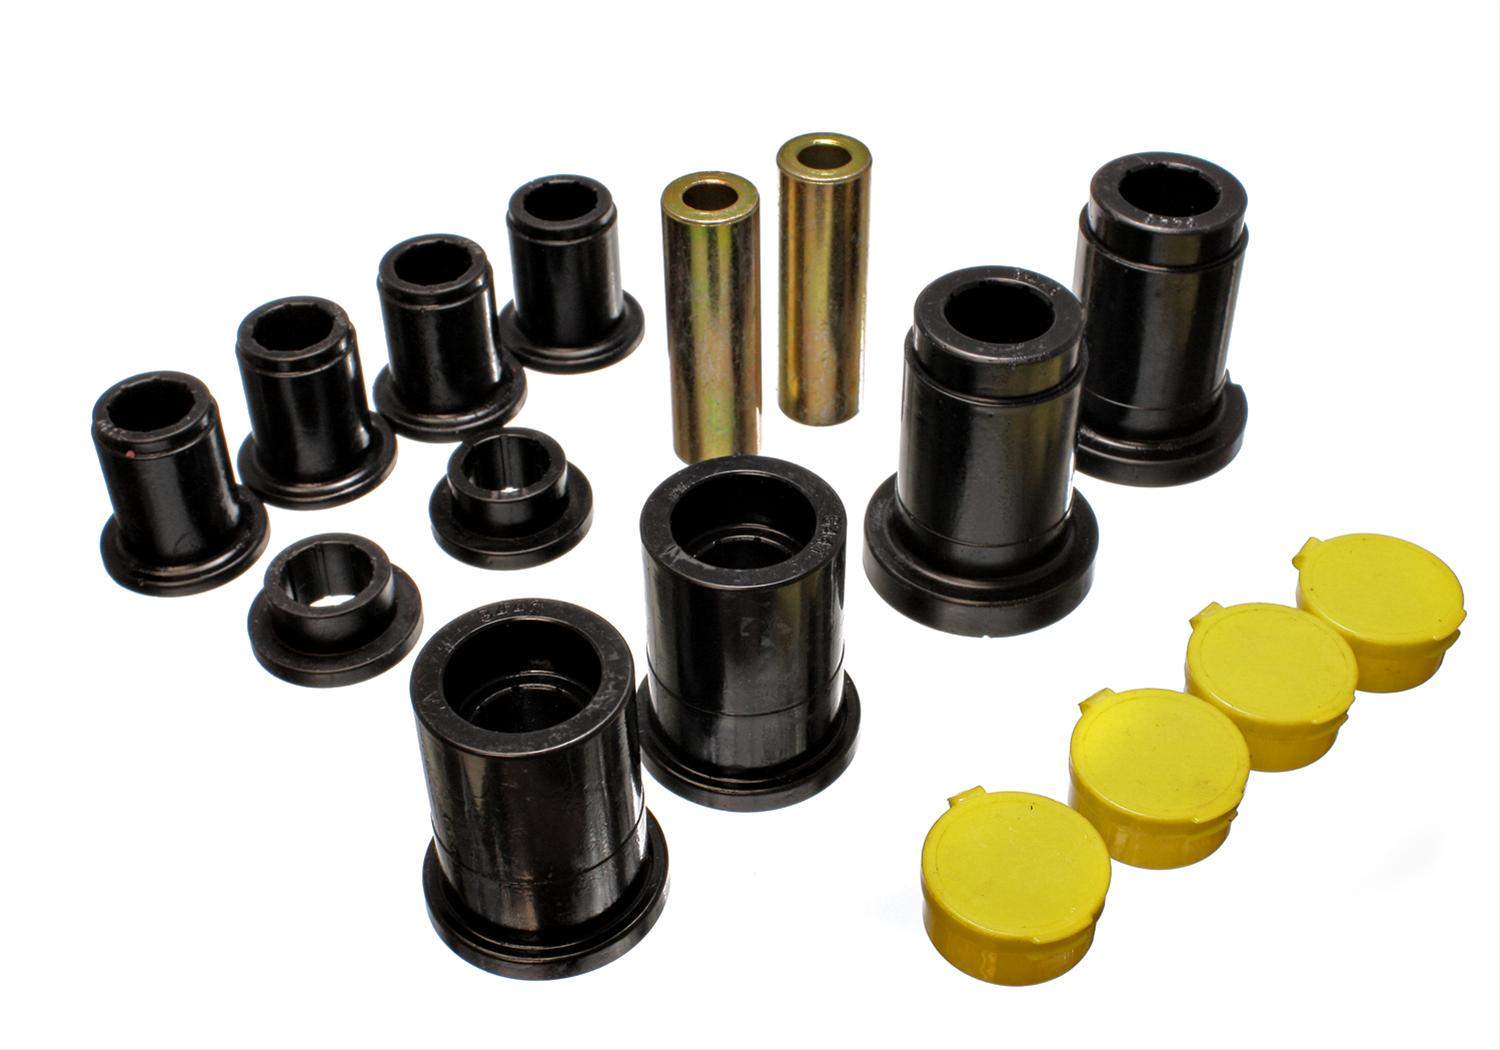 For Ford Crown Victoria 98-02 Energy Suspension Front Control Arm Bushings